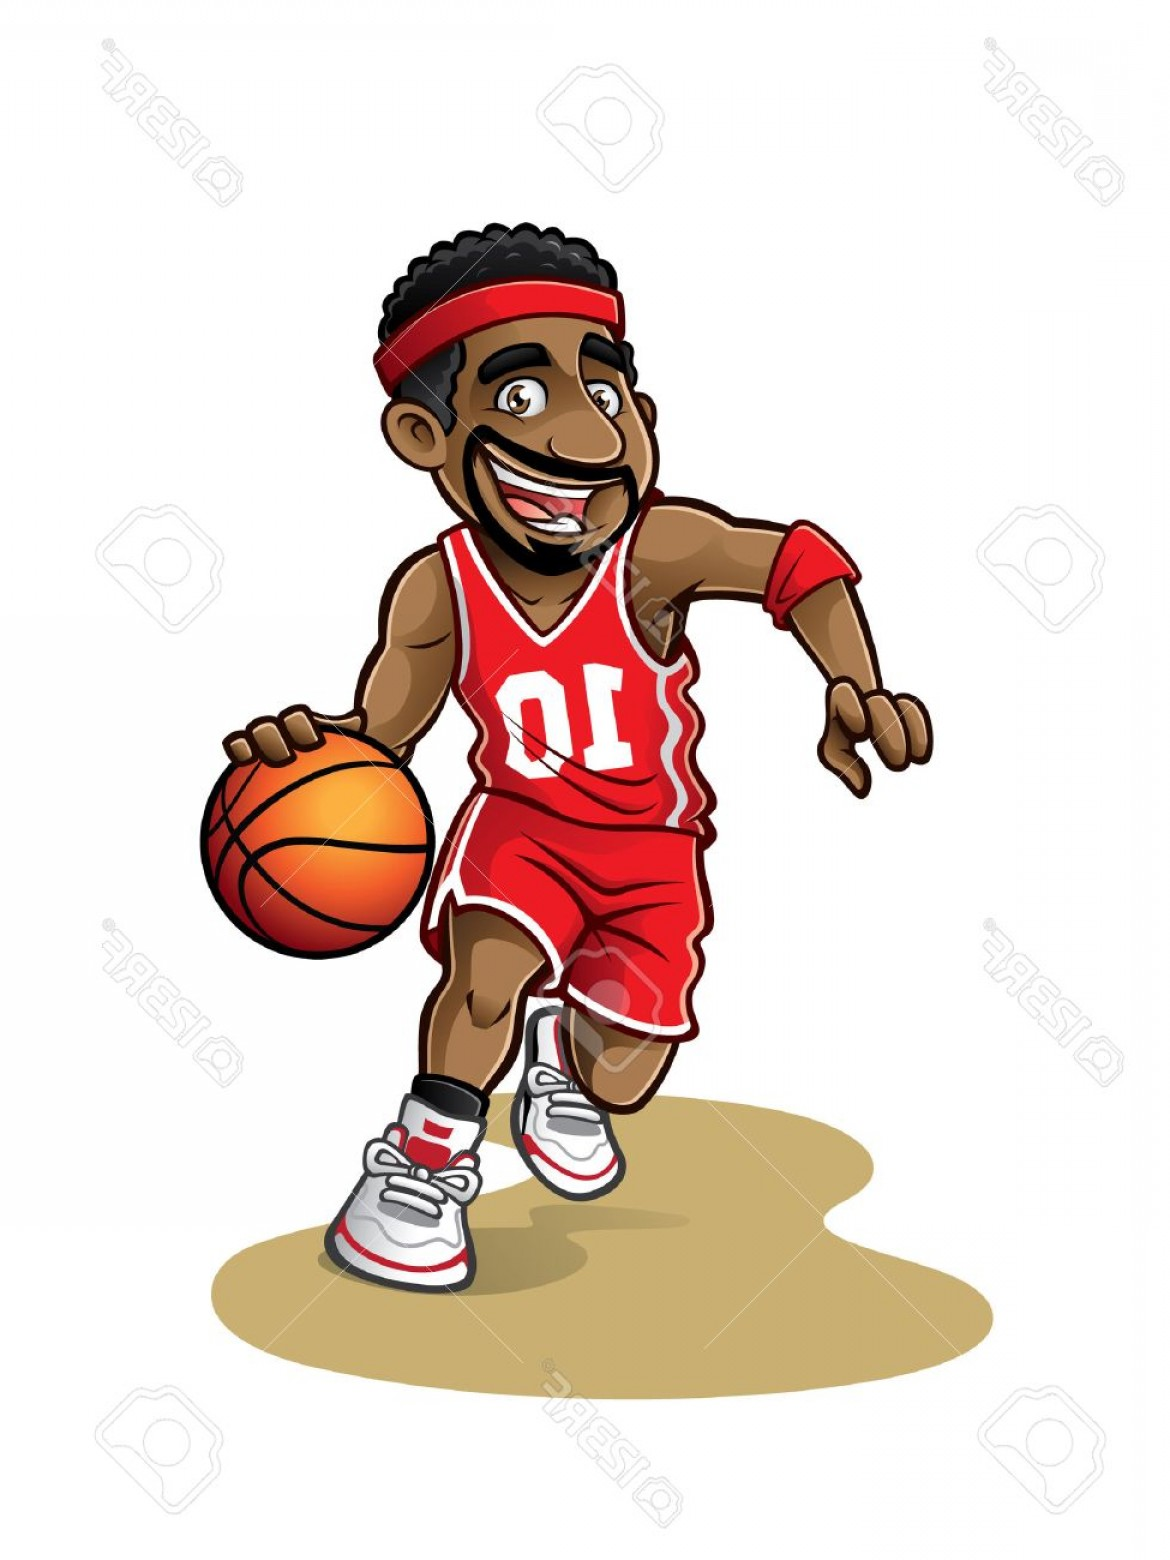 Cartoon Basketball Vector: Photostock Vector Cartoon Basketball Player Is Moving Dribble With A Smile